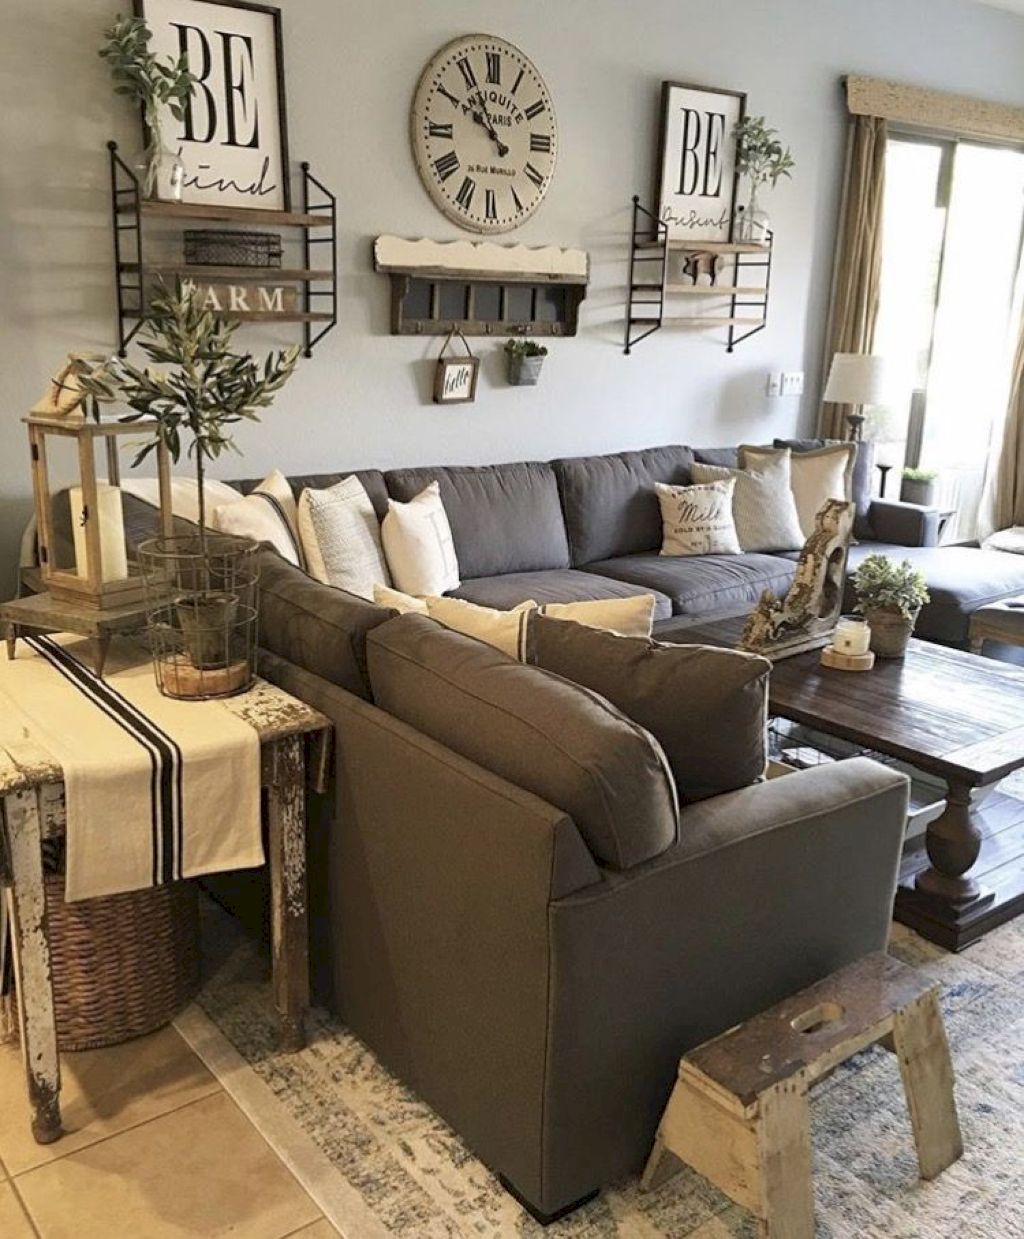 ideas a lover farmhouse if make pin your check these are decor wall rustic style you out so day will